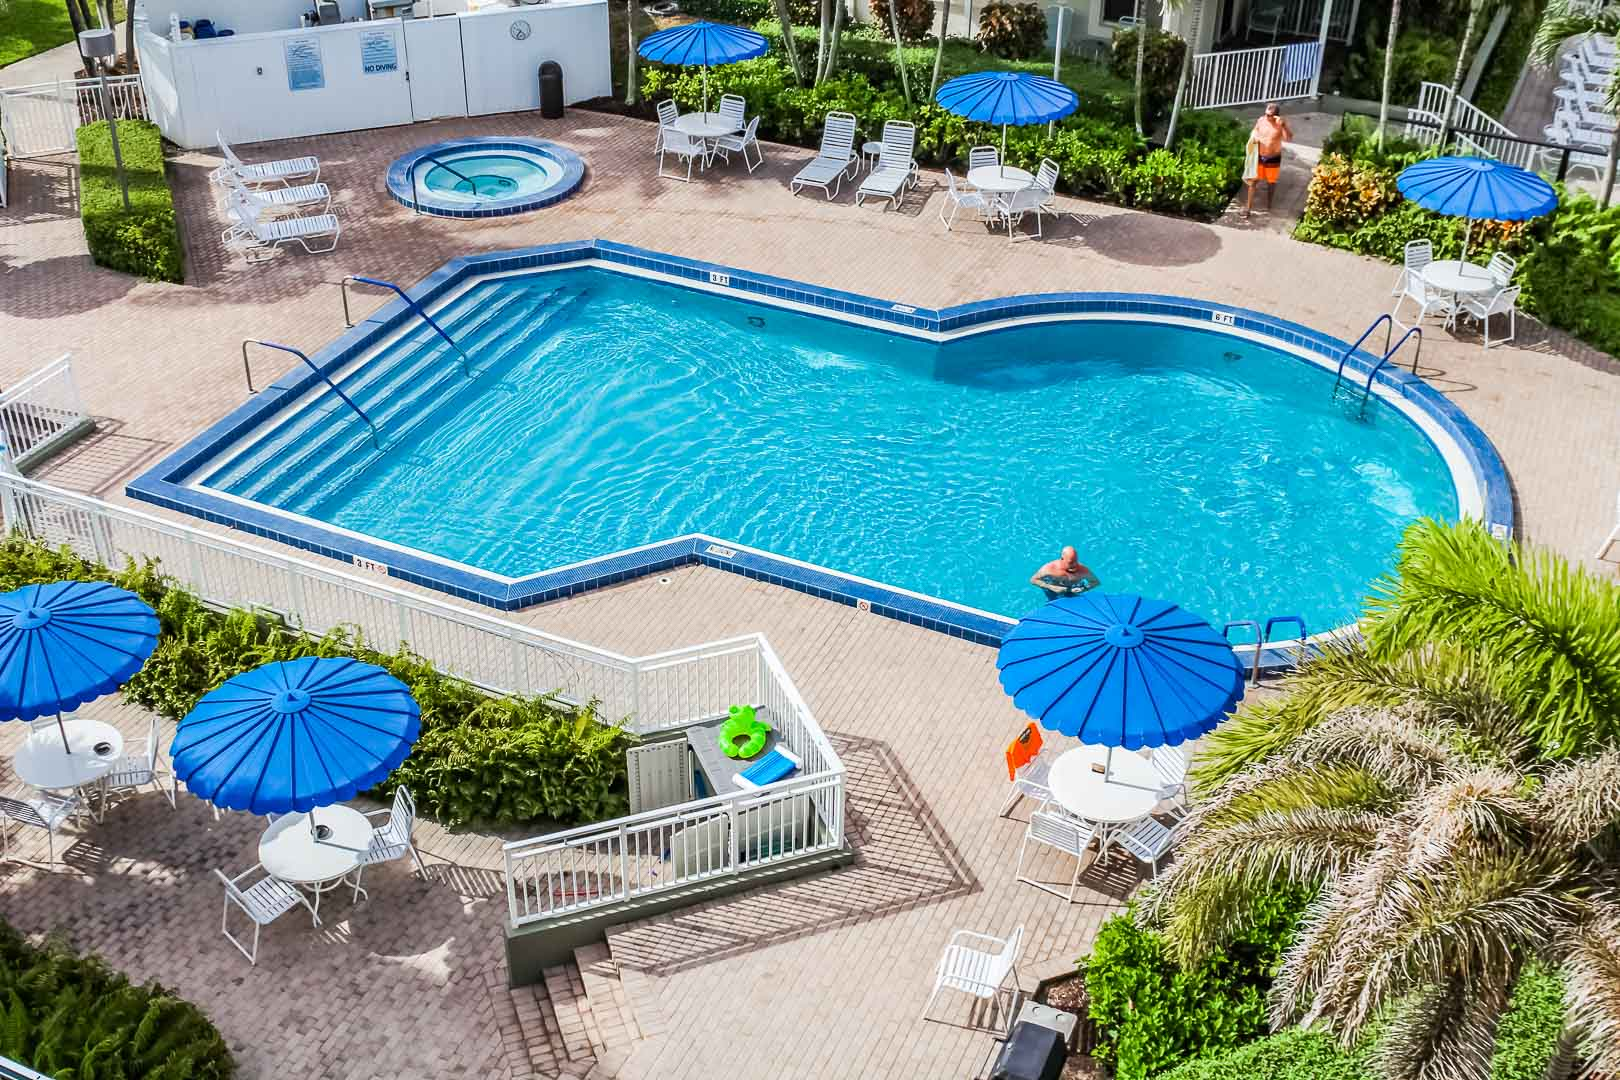 A refreshing pool and jacuzzi at VRI's Berkshire by the Sea in Florida.